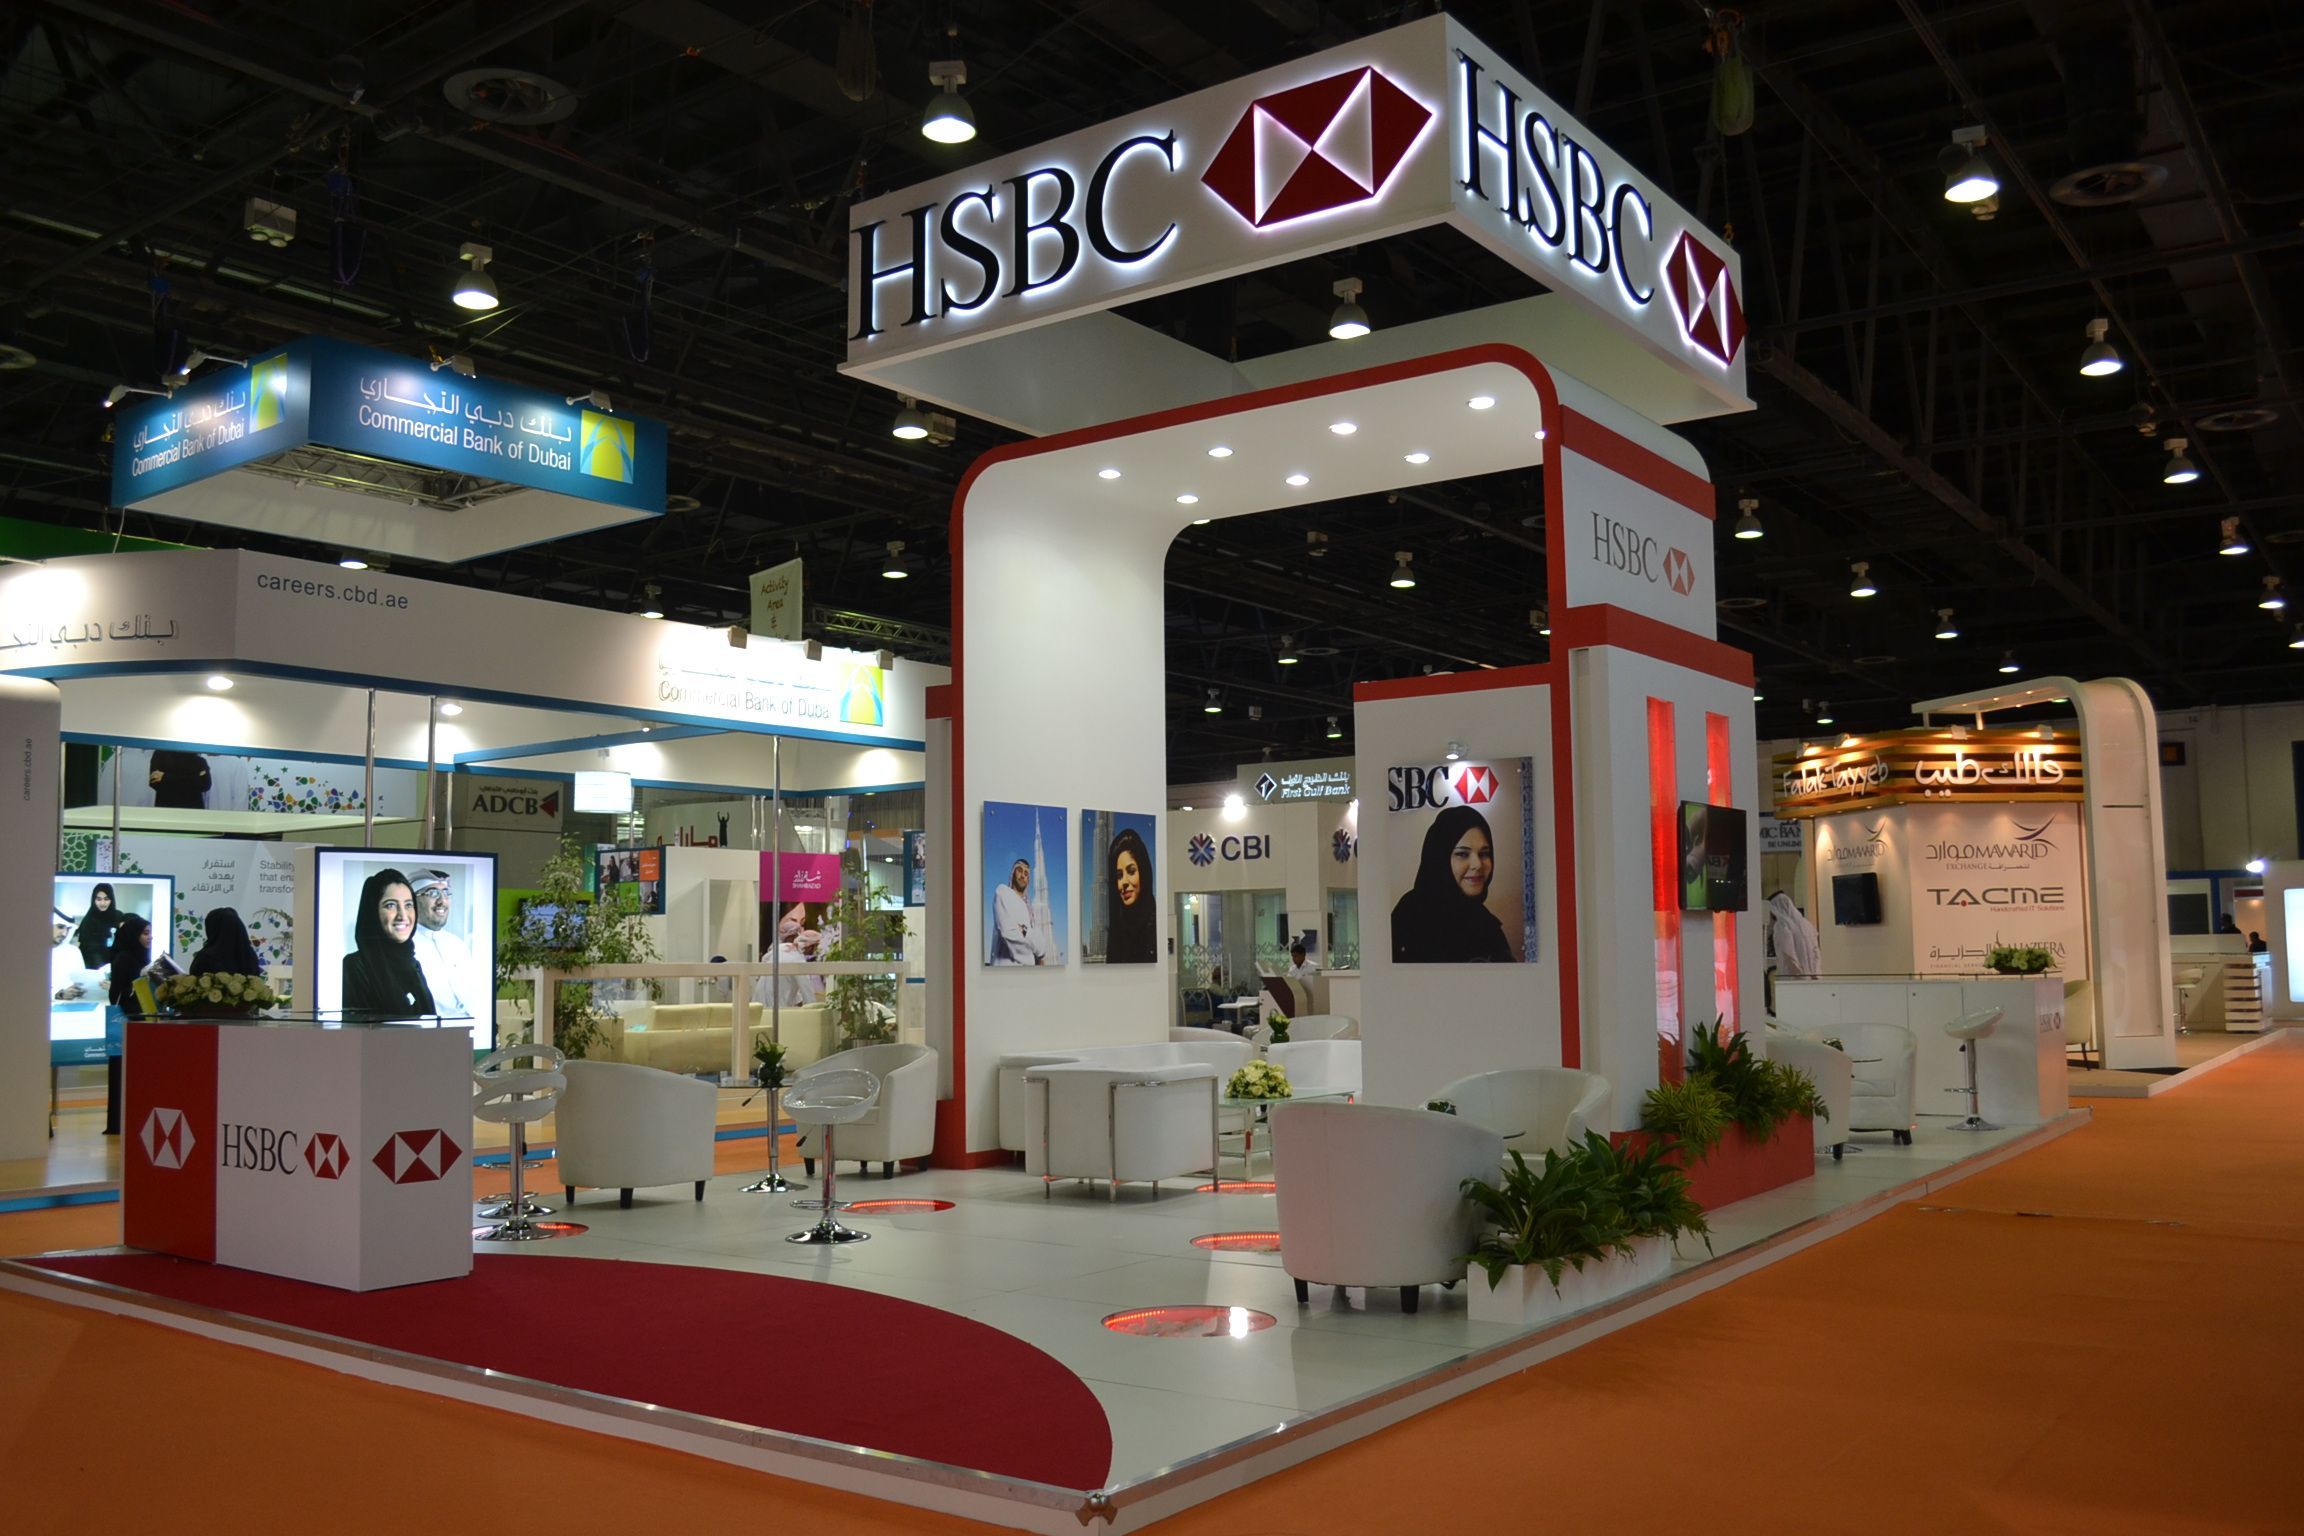 D Exhibition Stall Designer Jobs In Dubai : Hsbc booth dubai career fair